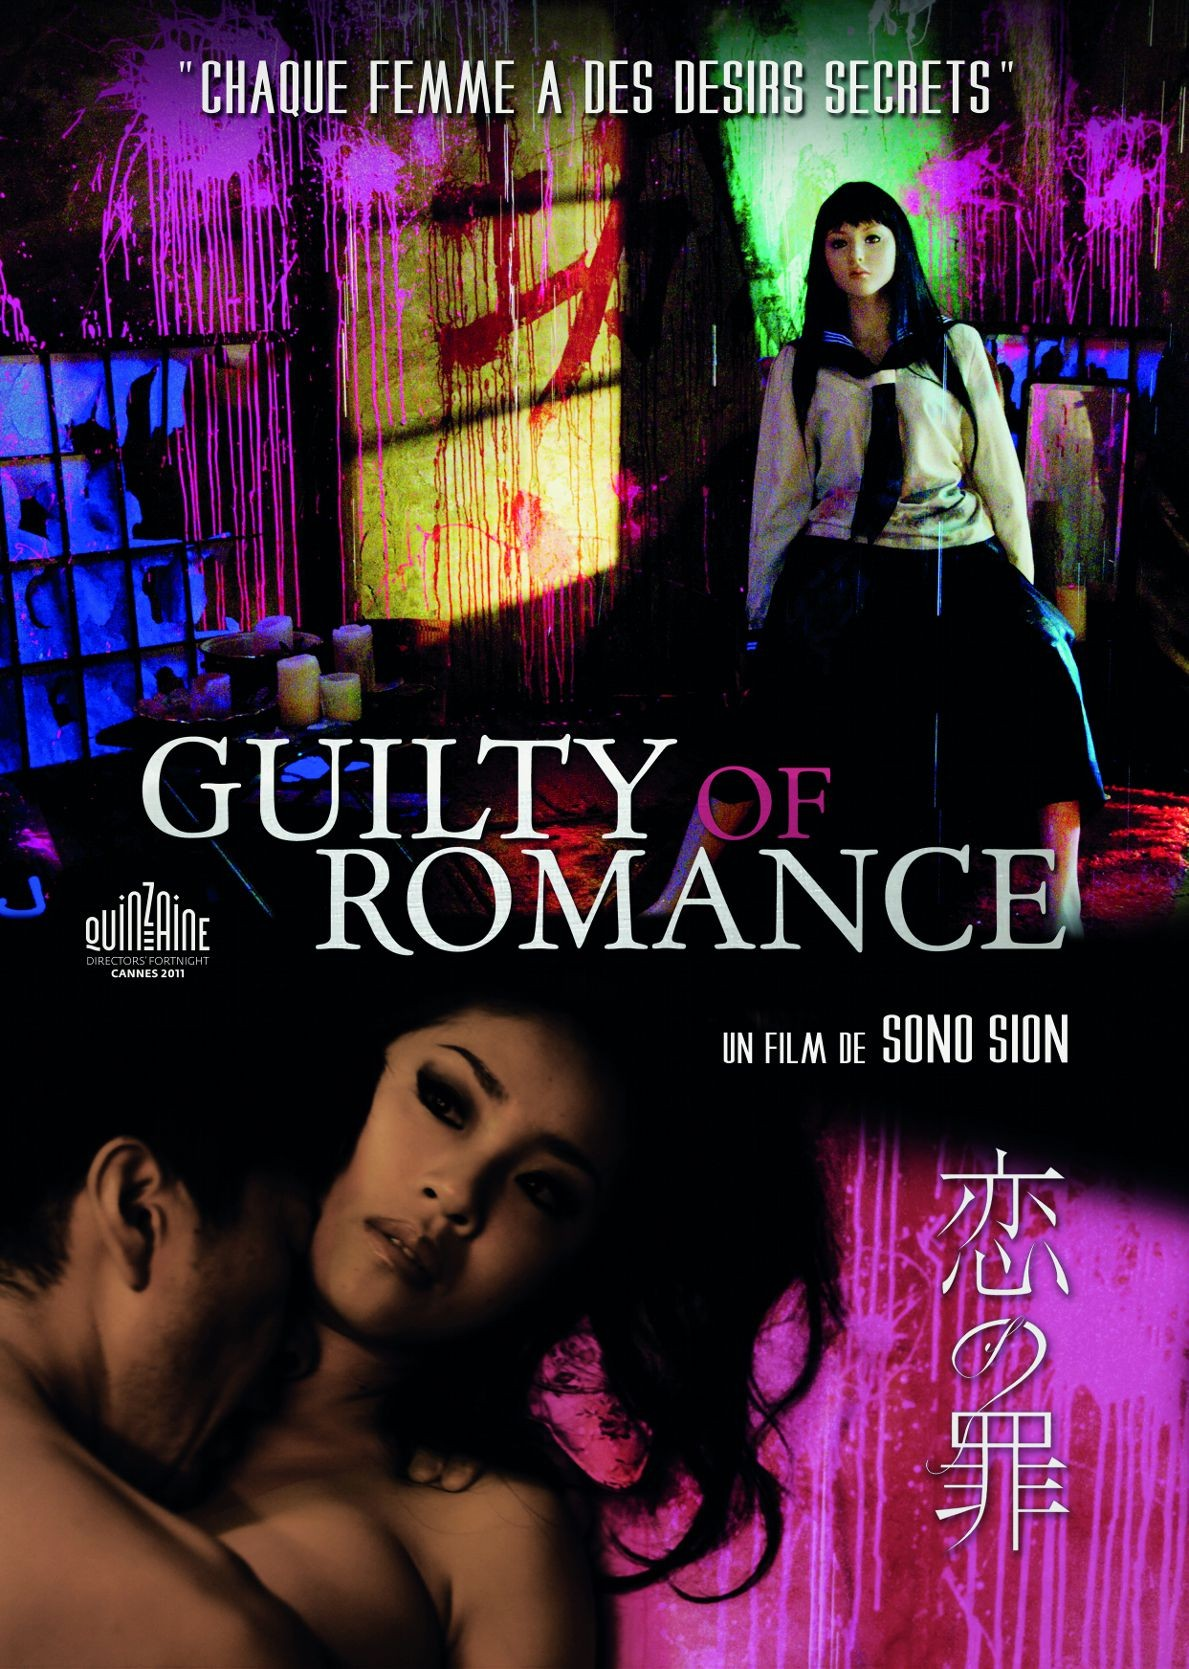 http://img.filmsactu.net/datas/films/g/u/guilty-of-romance/xl/guilty-of-romance-affiche-4fbf517323df0.jpg